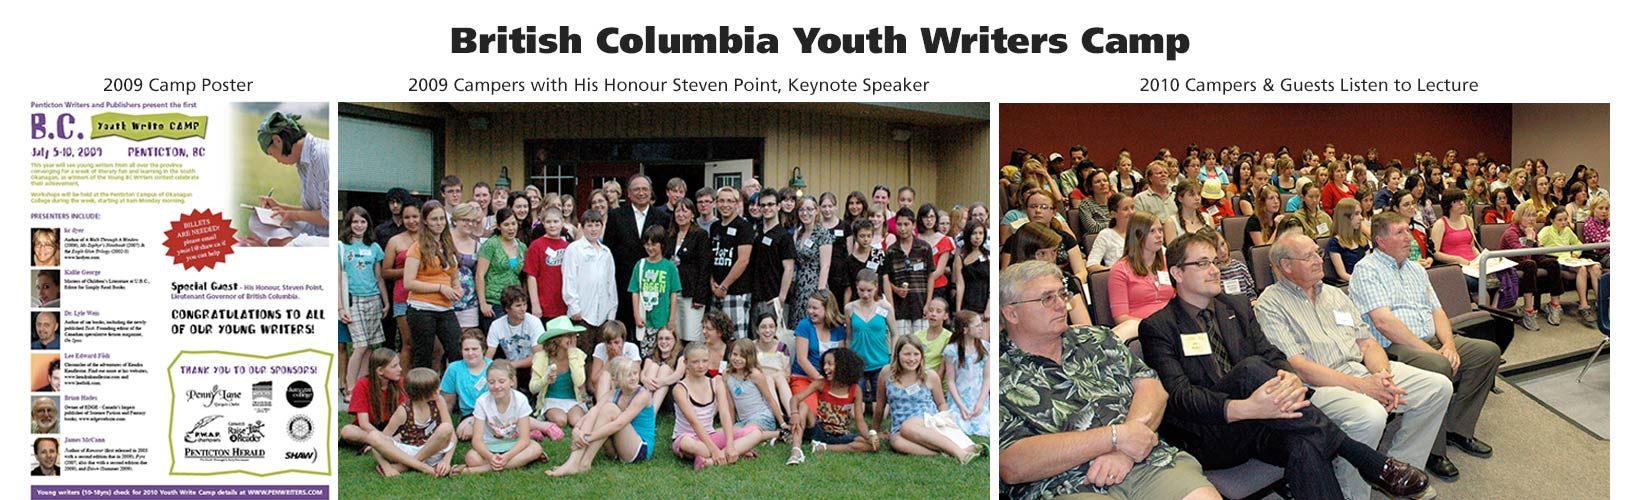 B.C. (British Columbia) Youth Writers Camp